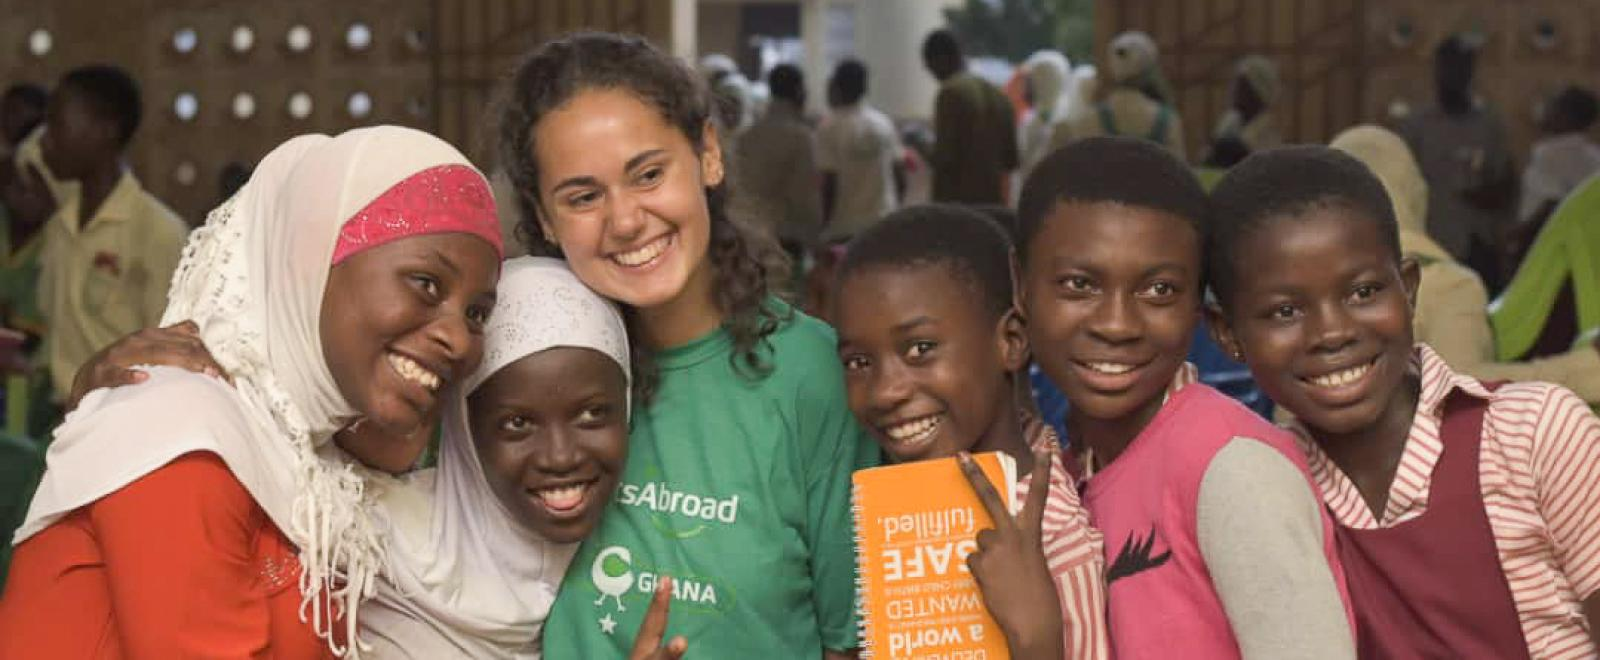 Projects Abroad volunteer meets local people in Ghana